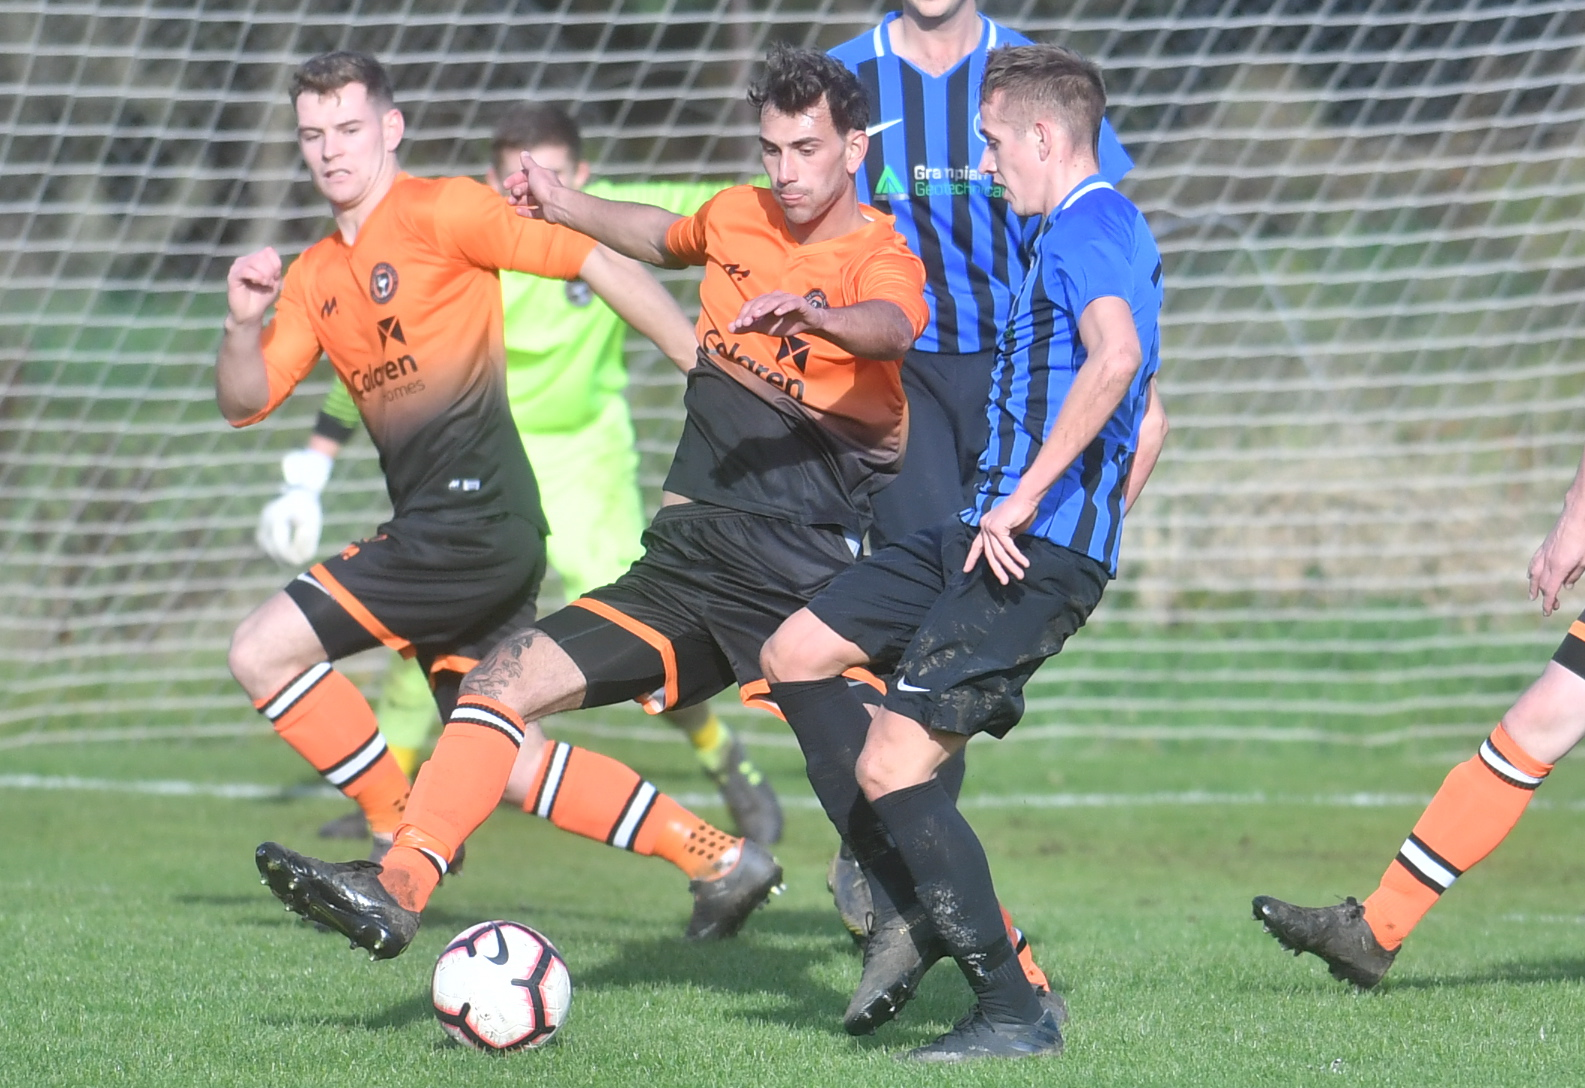 Fraserburgh United in action against Hermes. Picture by Chris Sumner